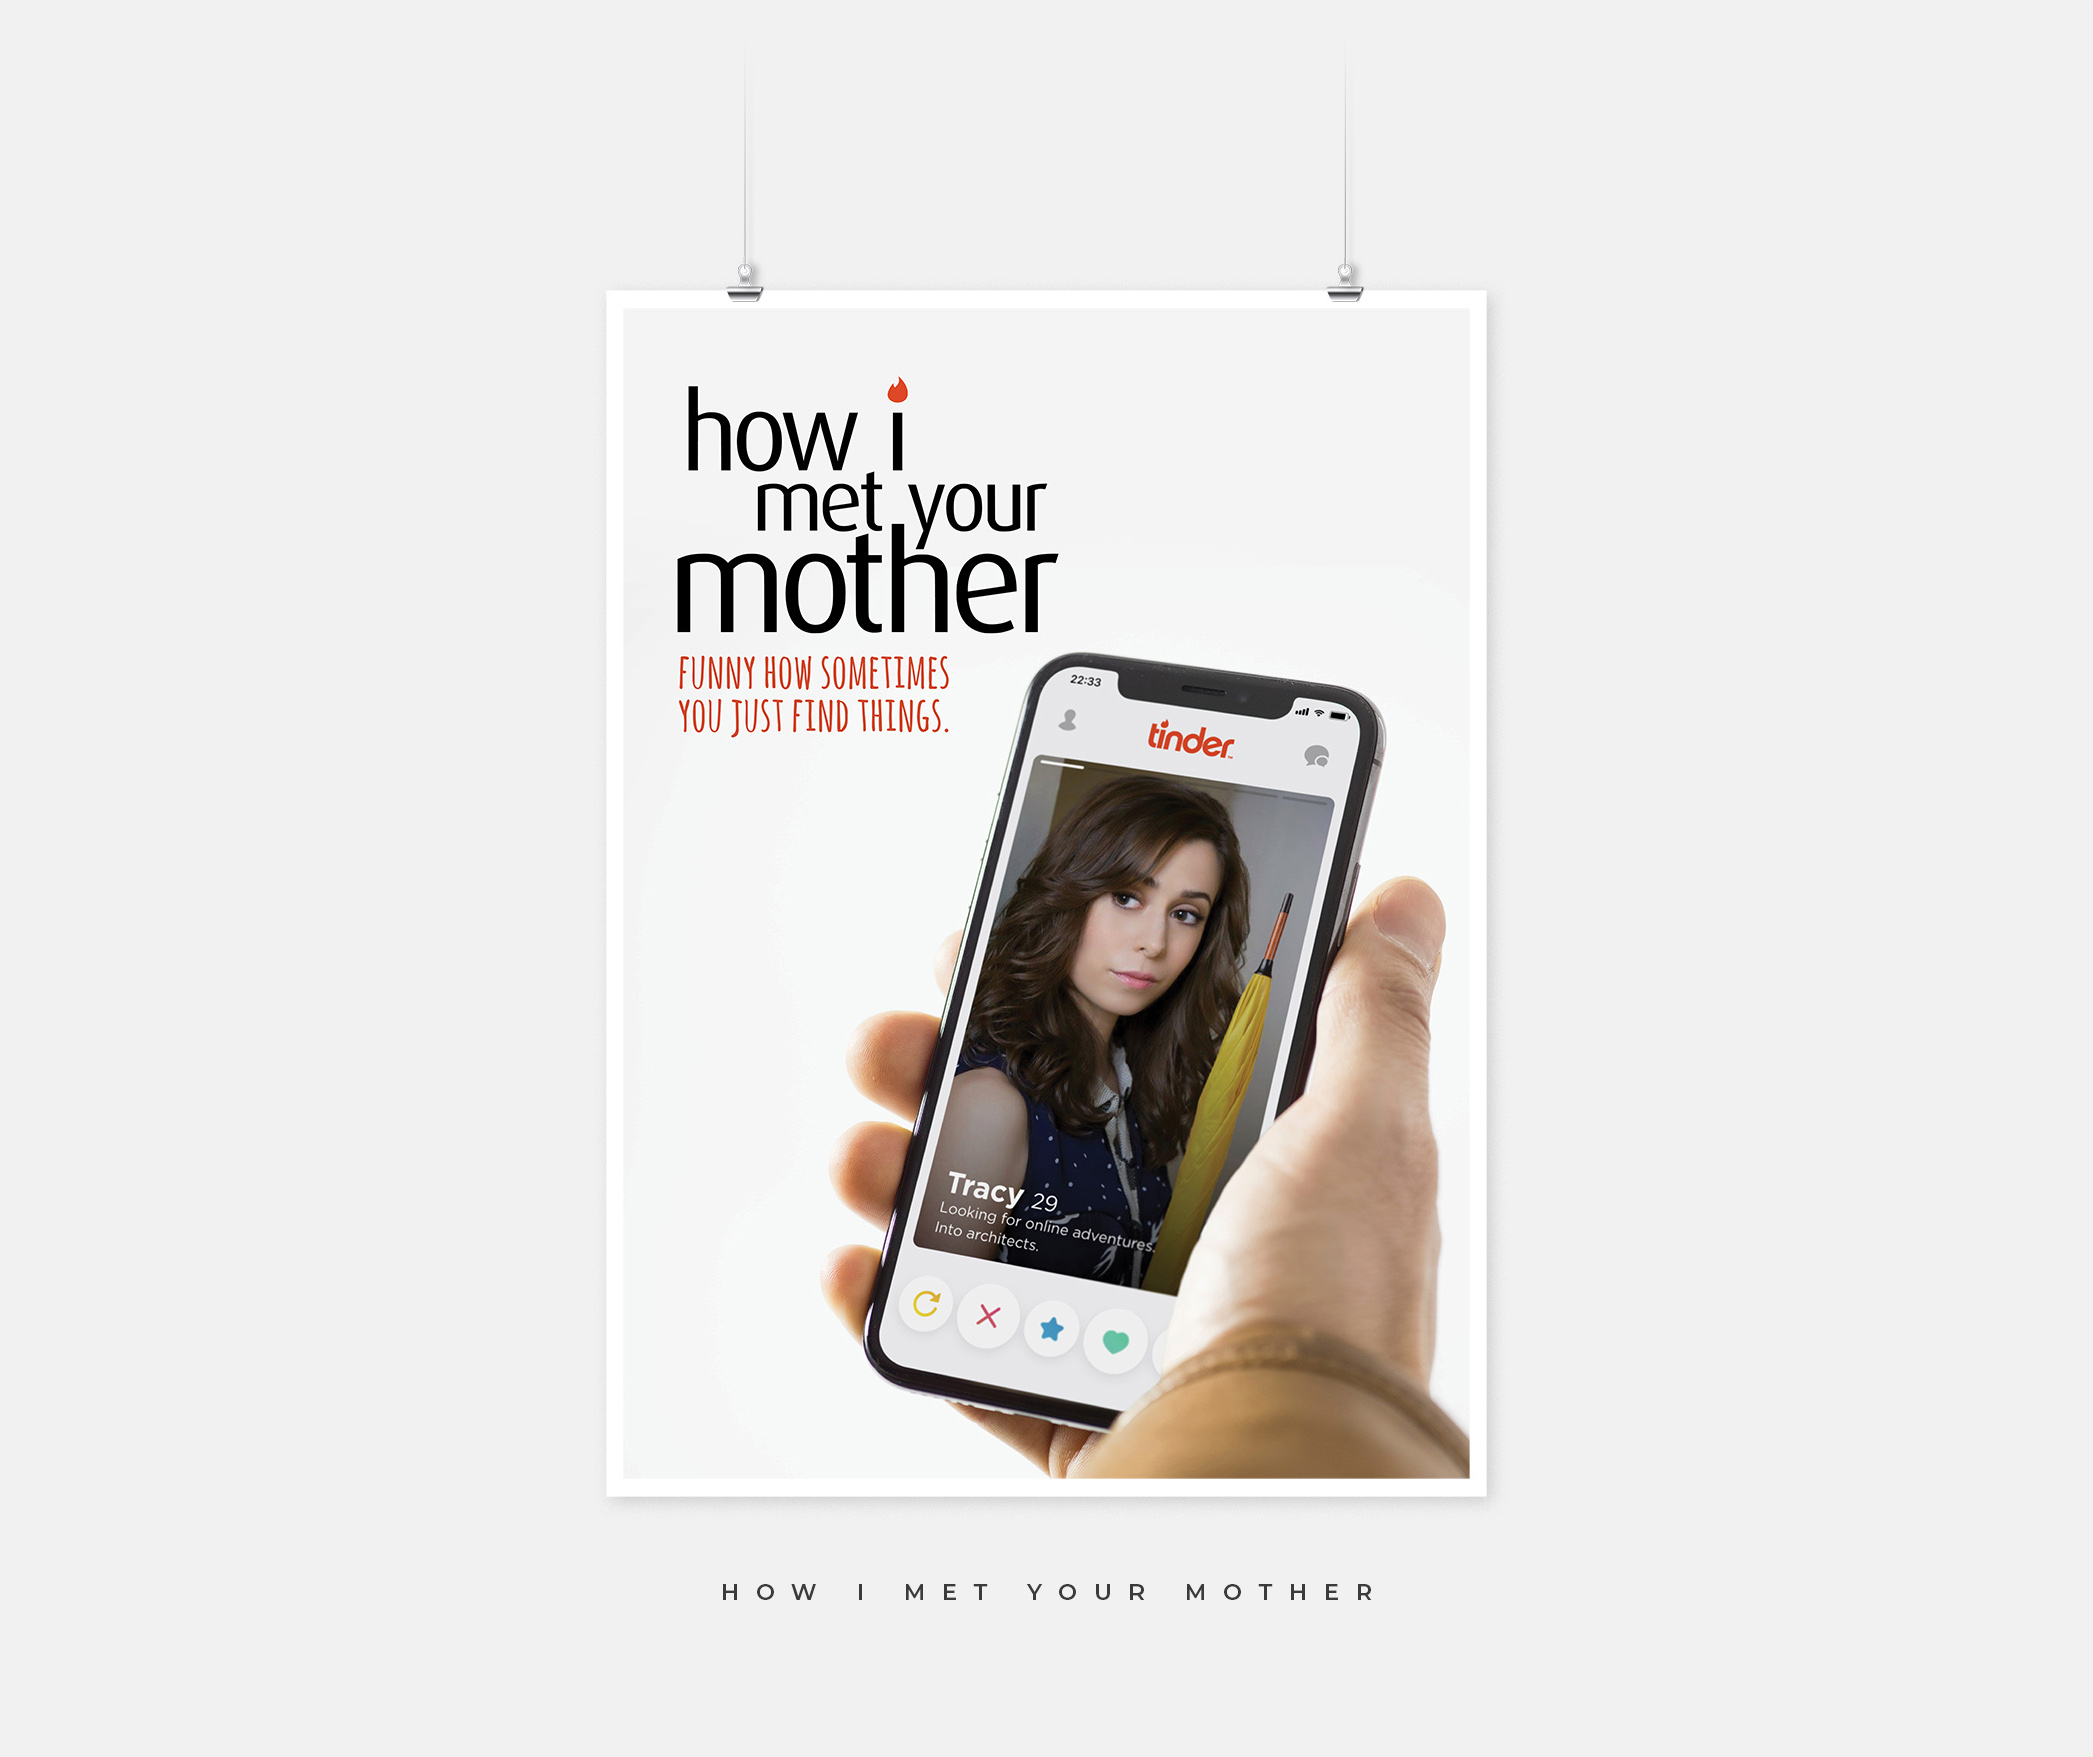 How I Met Your Mother poster with an image of a hand holding a phone with the Tinder app open.